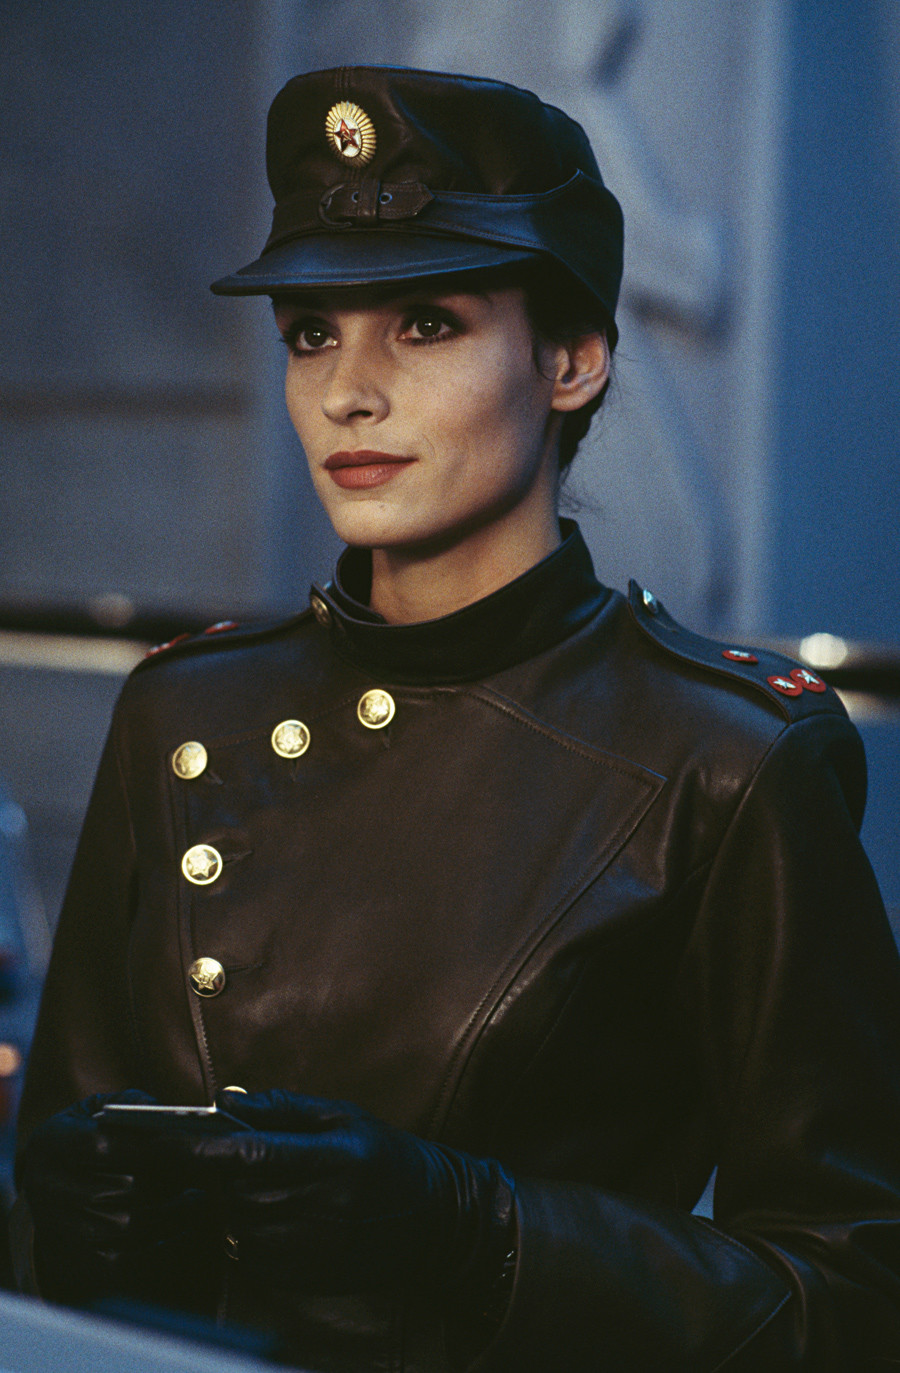 Dutch-born actress Famke Janssen stars as the villainous Xenia Onatopp in the James Bond film 'GoldenEye', 1995